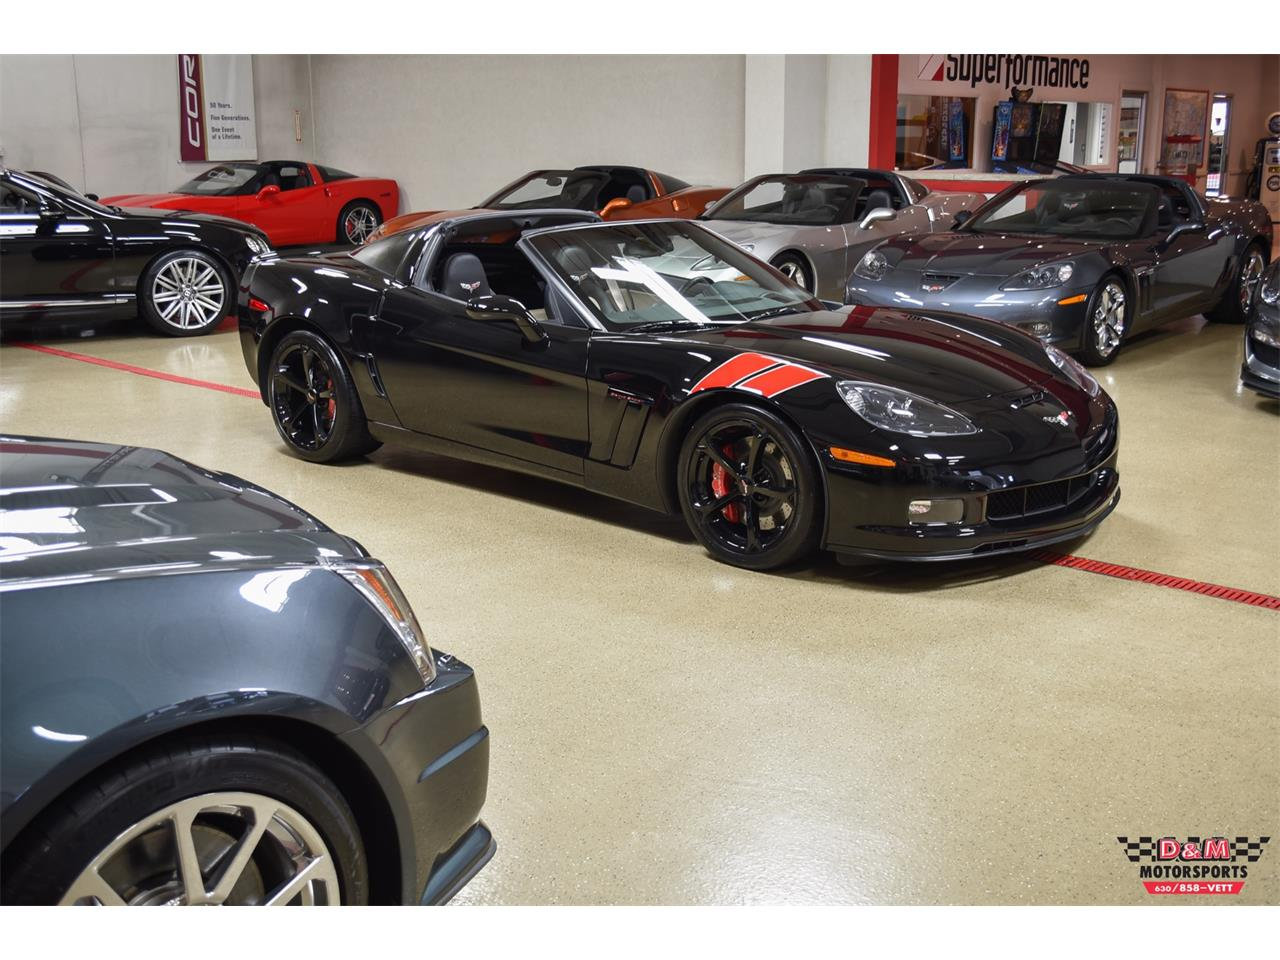 Large Picture of '10 Corvette located in Illinois - $37,995.00 Offered by D & M Motorsports - PUJ0